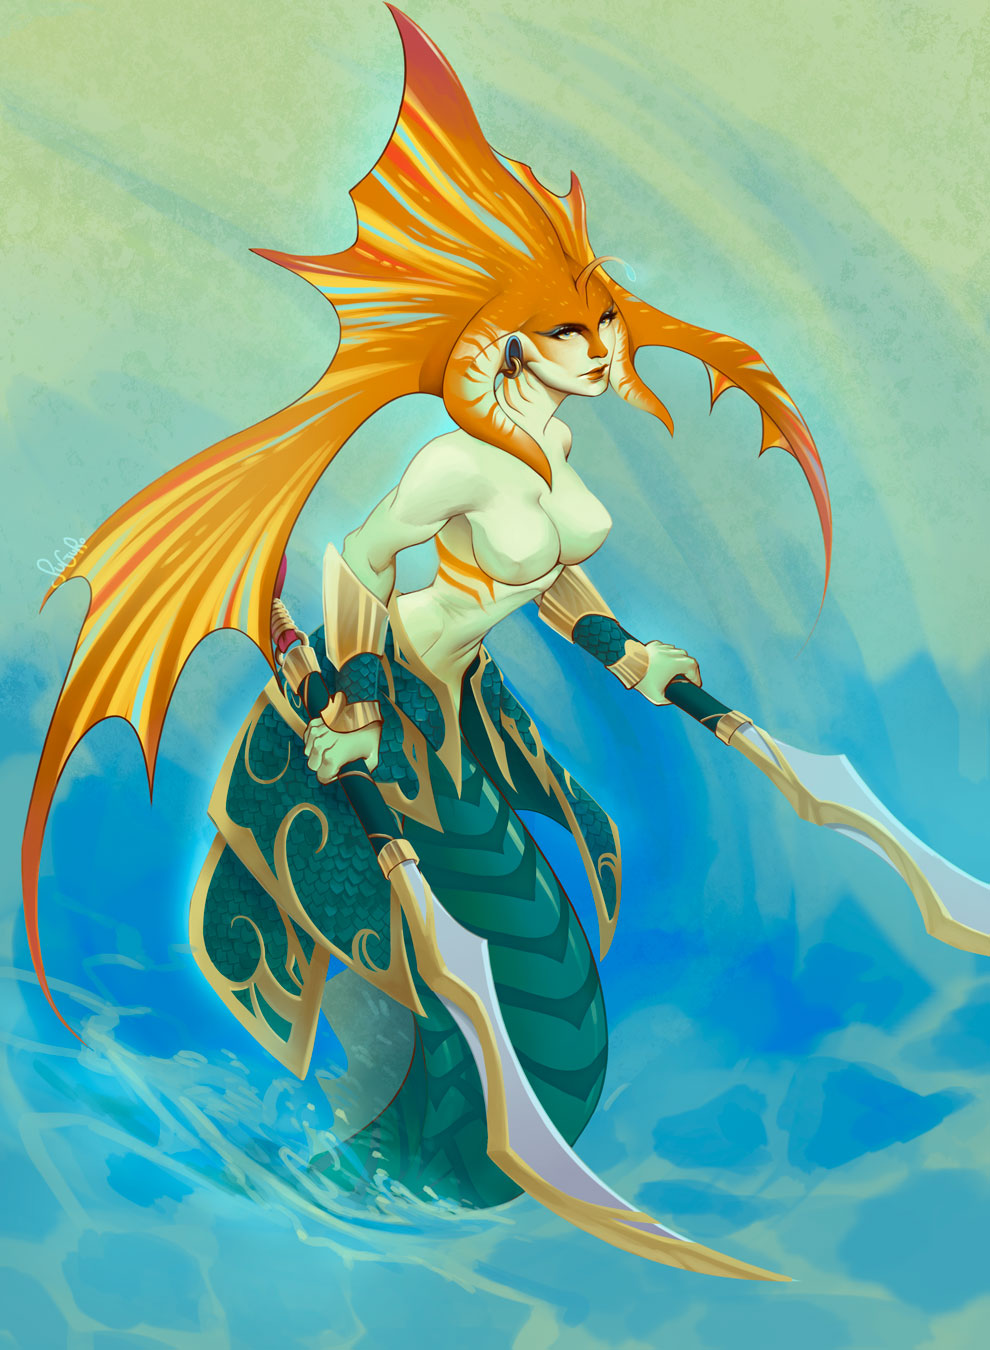 Dota R34 image about art in 🌌 cool and amazing things 🌌in the